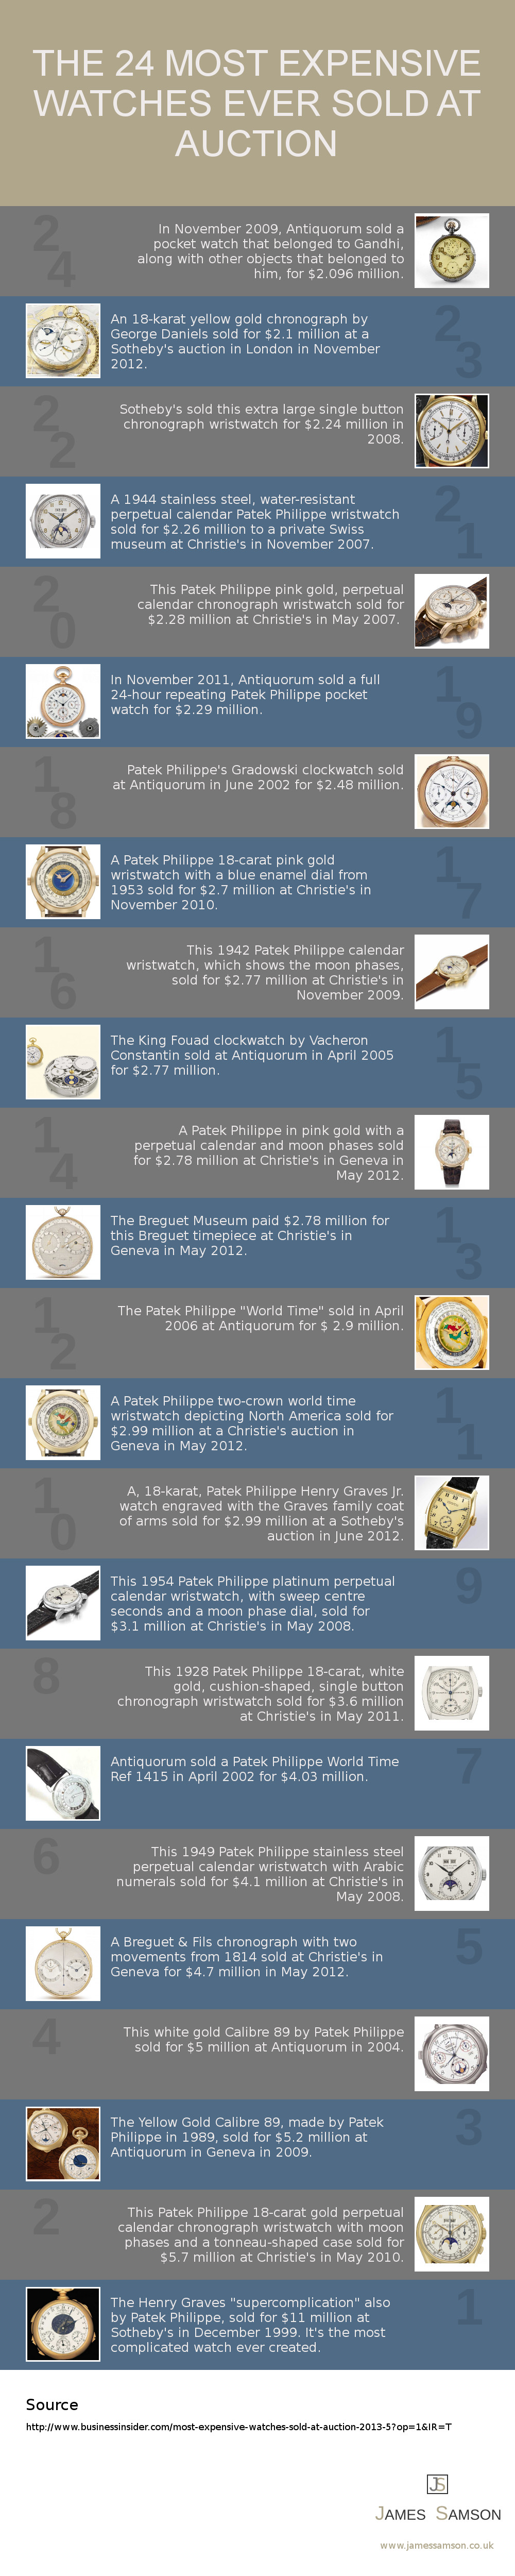 24 Most Expensive Watches Ever Sold At Auction [Infographic]